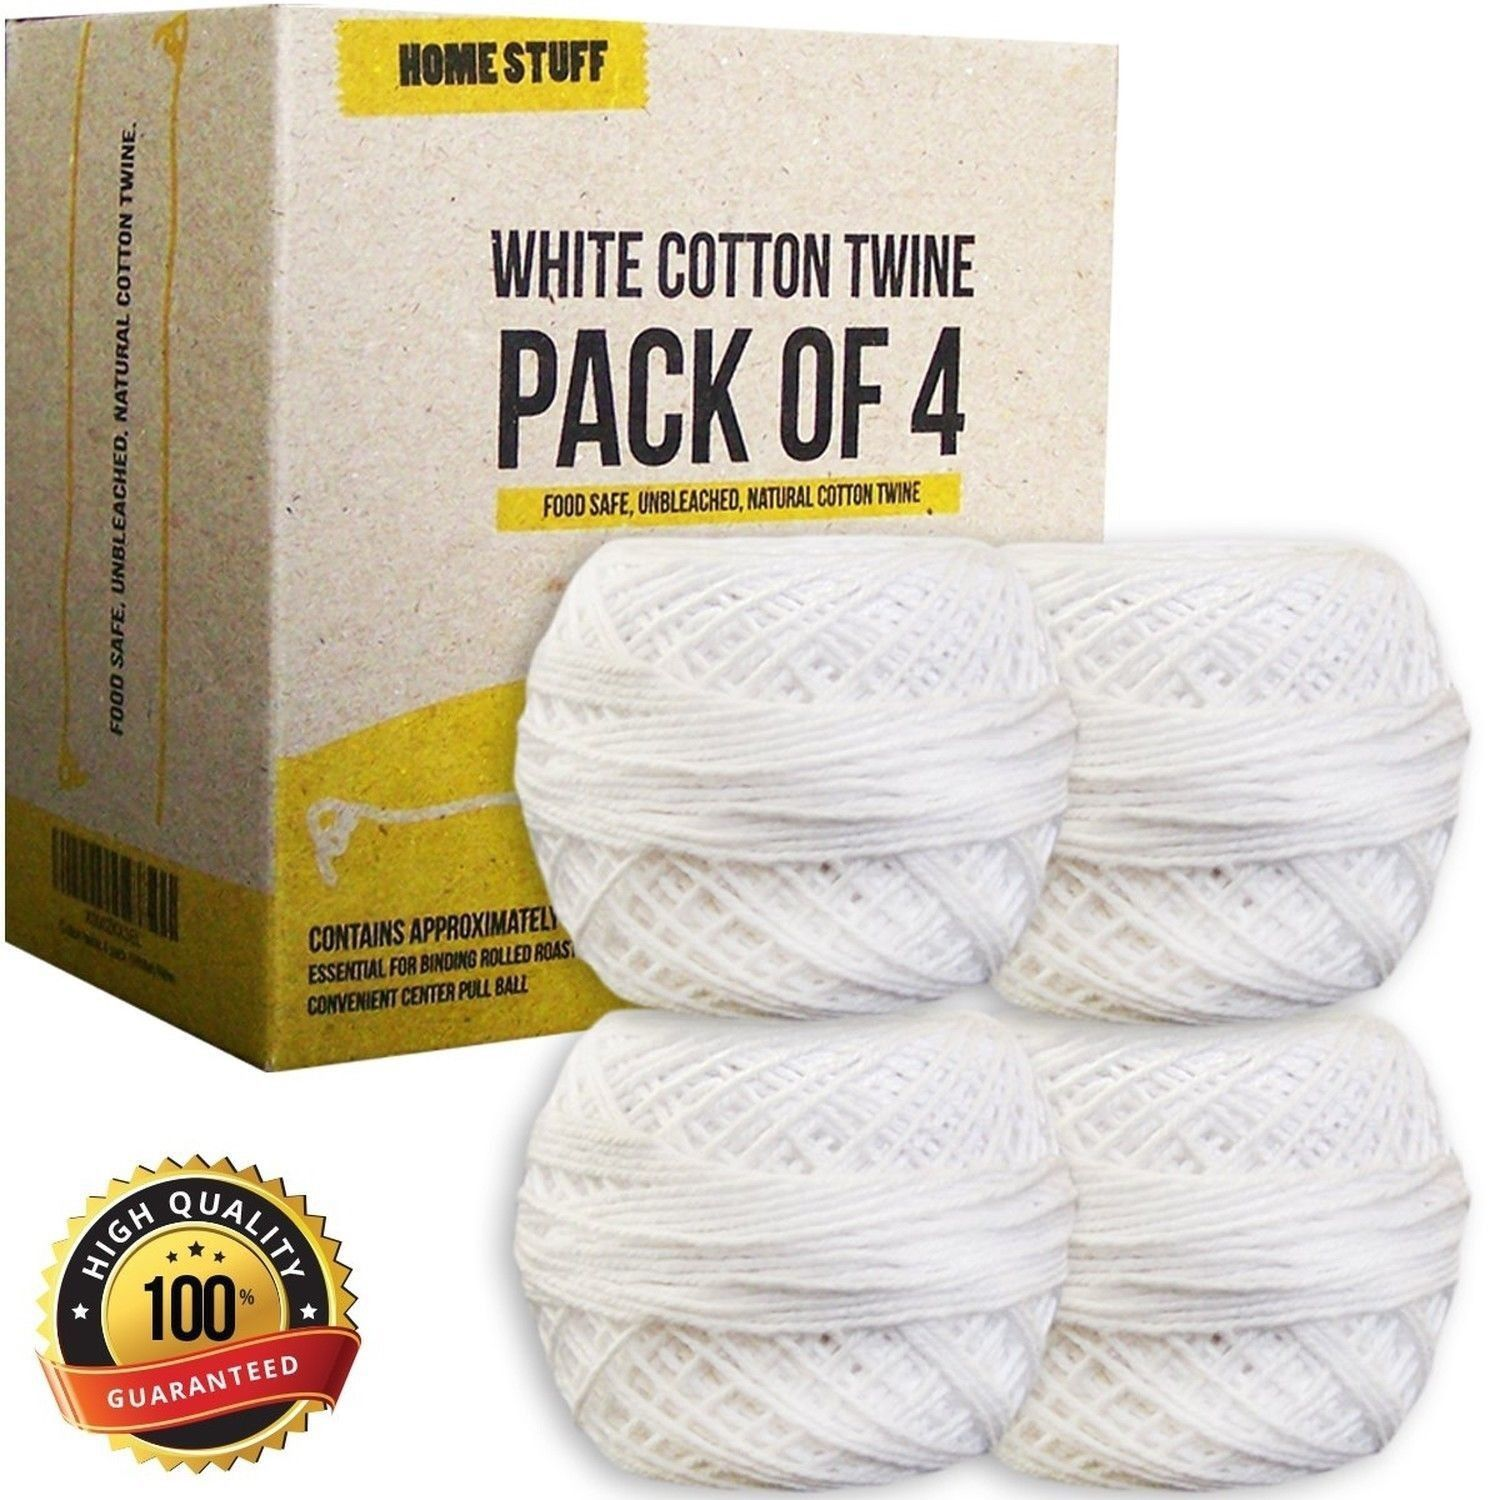 Https Products 1 Cotton Twine 4 Pack White String Fossil Jacqueline Light Brown Leather Strap Watch Es 4086 57 4a268aec 805d 4eea B3fe E7166095a473v1478027997